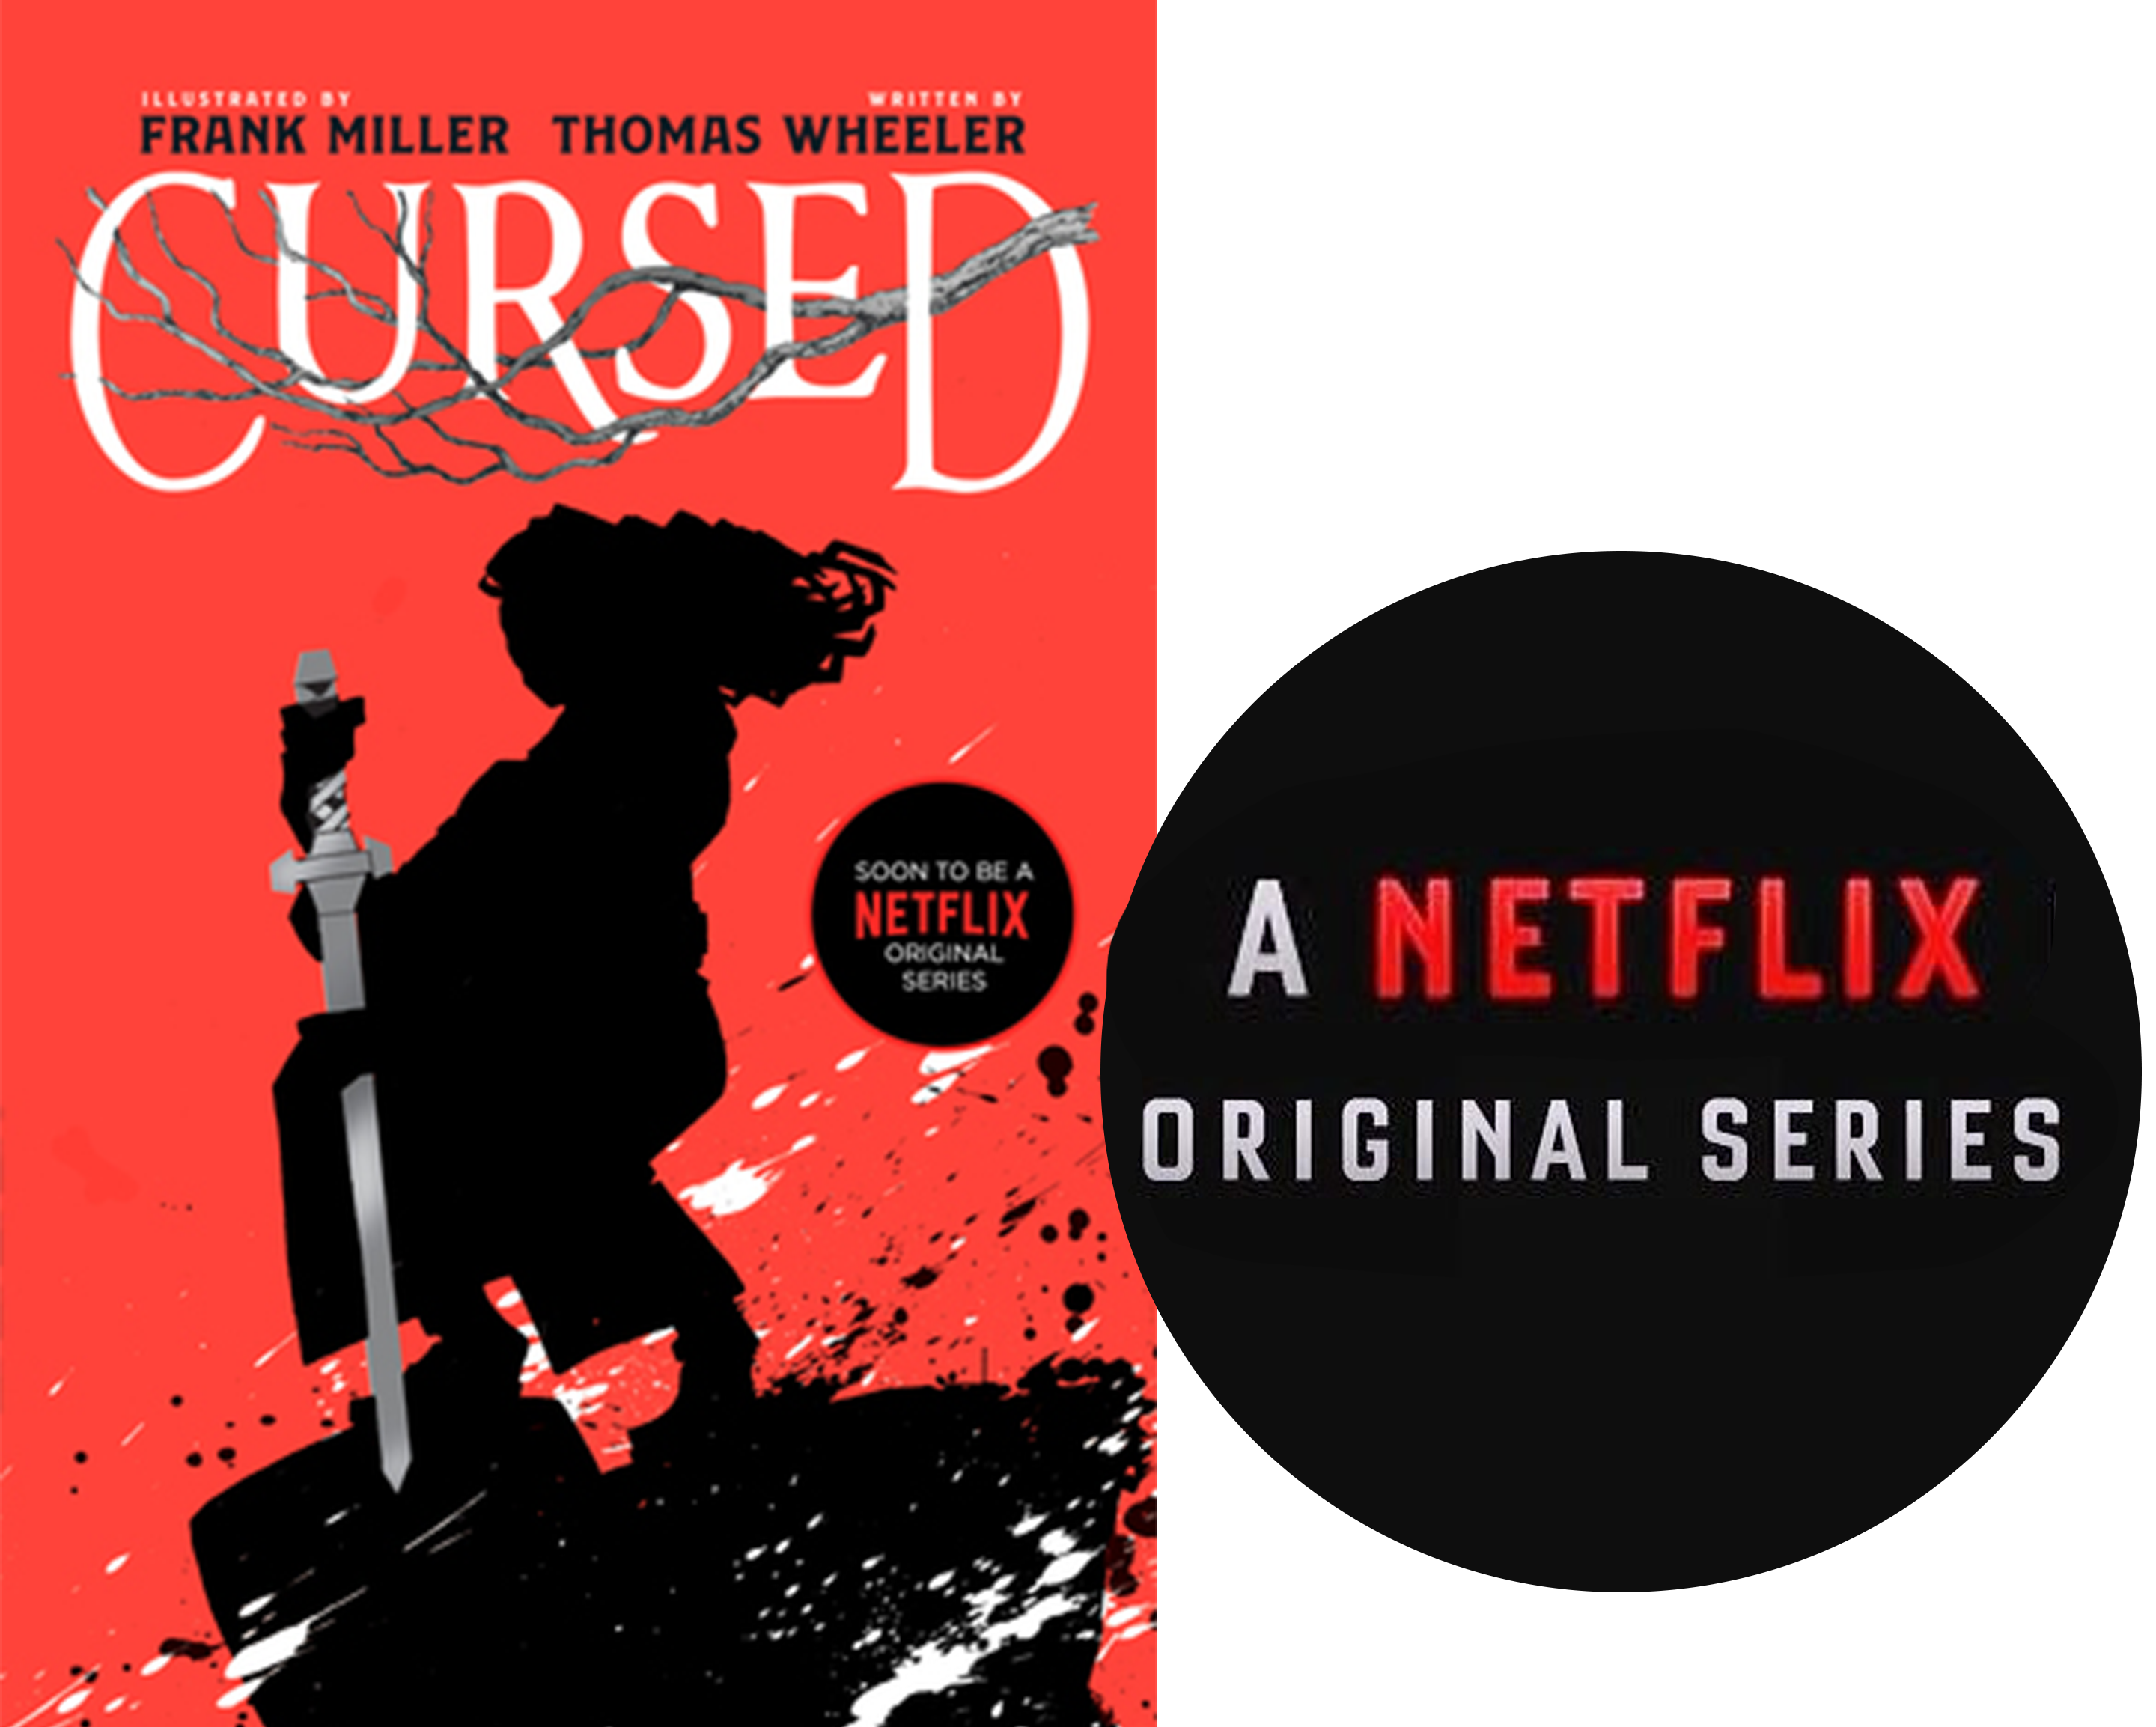 Thomas Wheeler and Frank Miller-Cursed